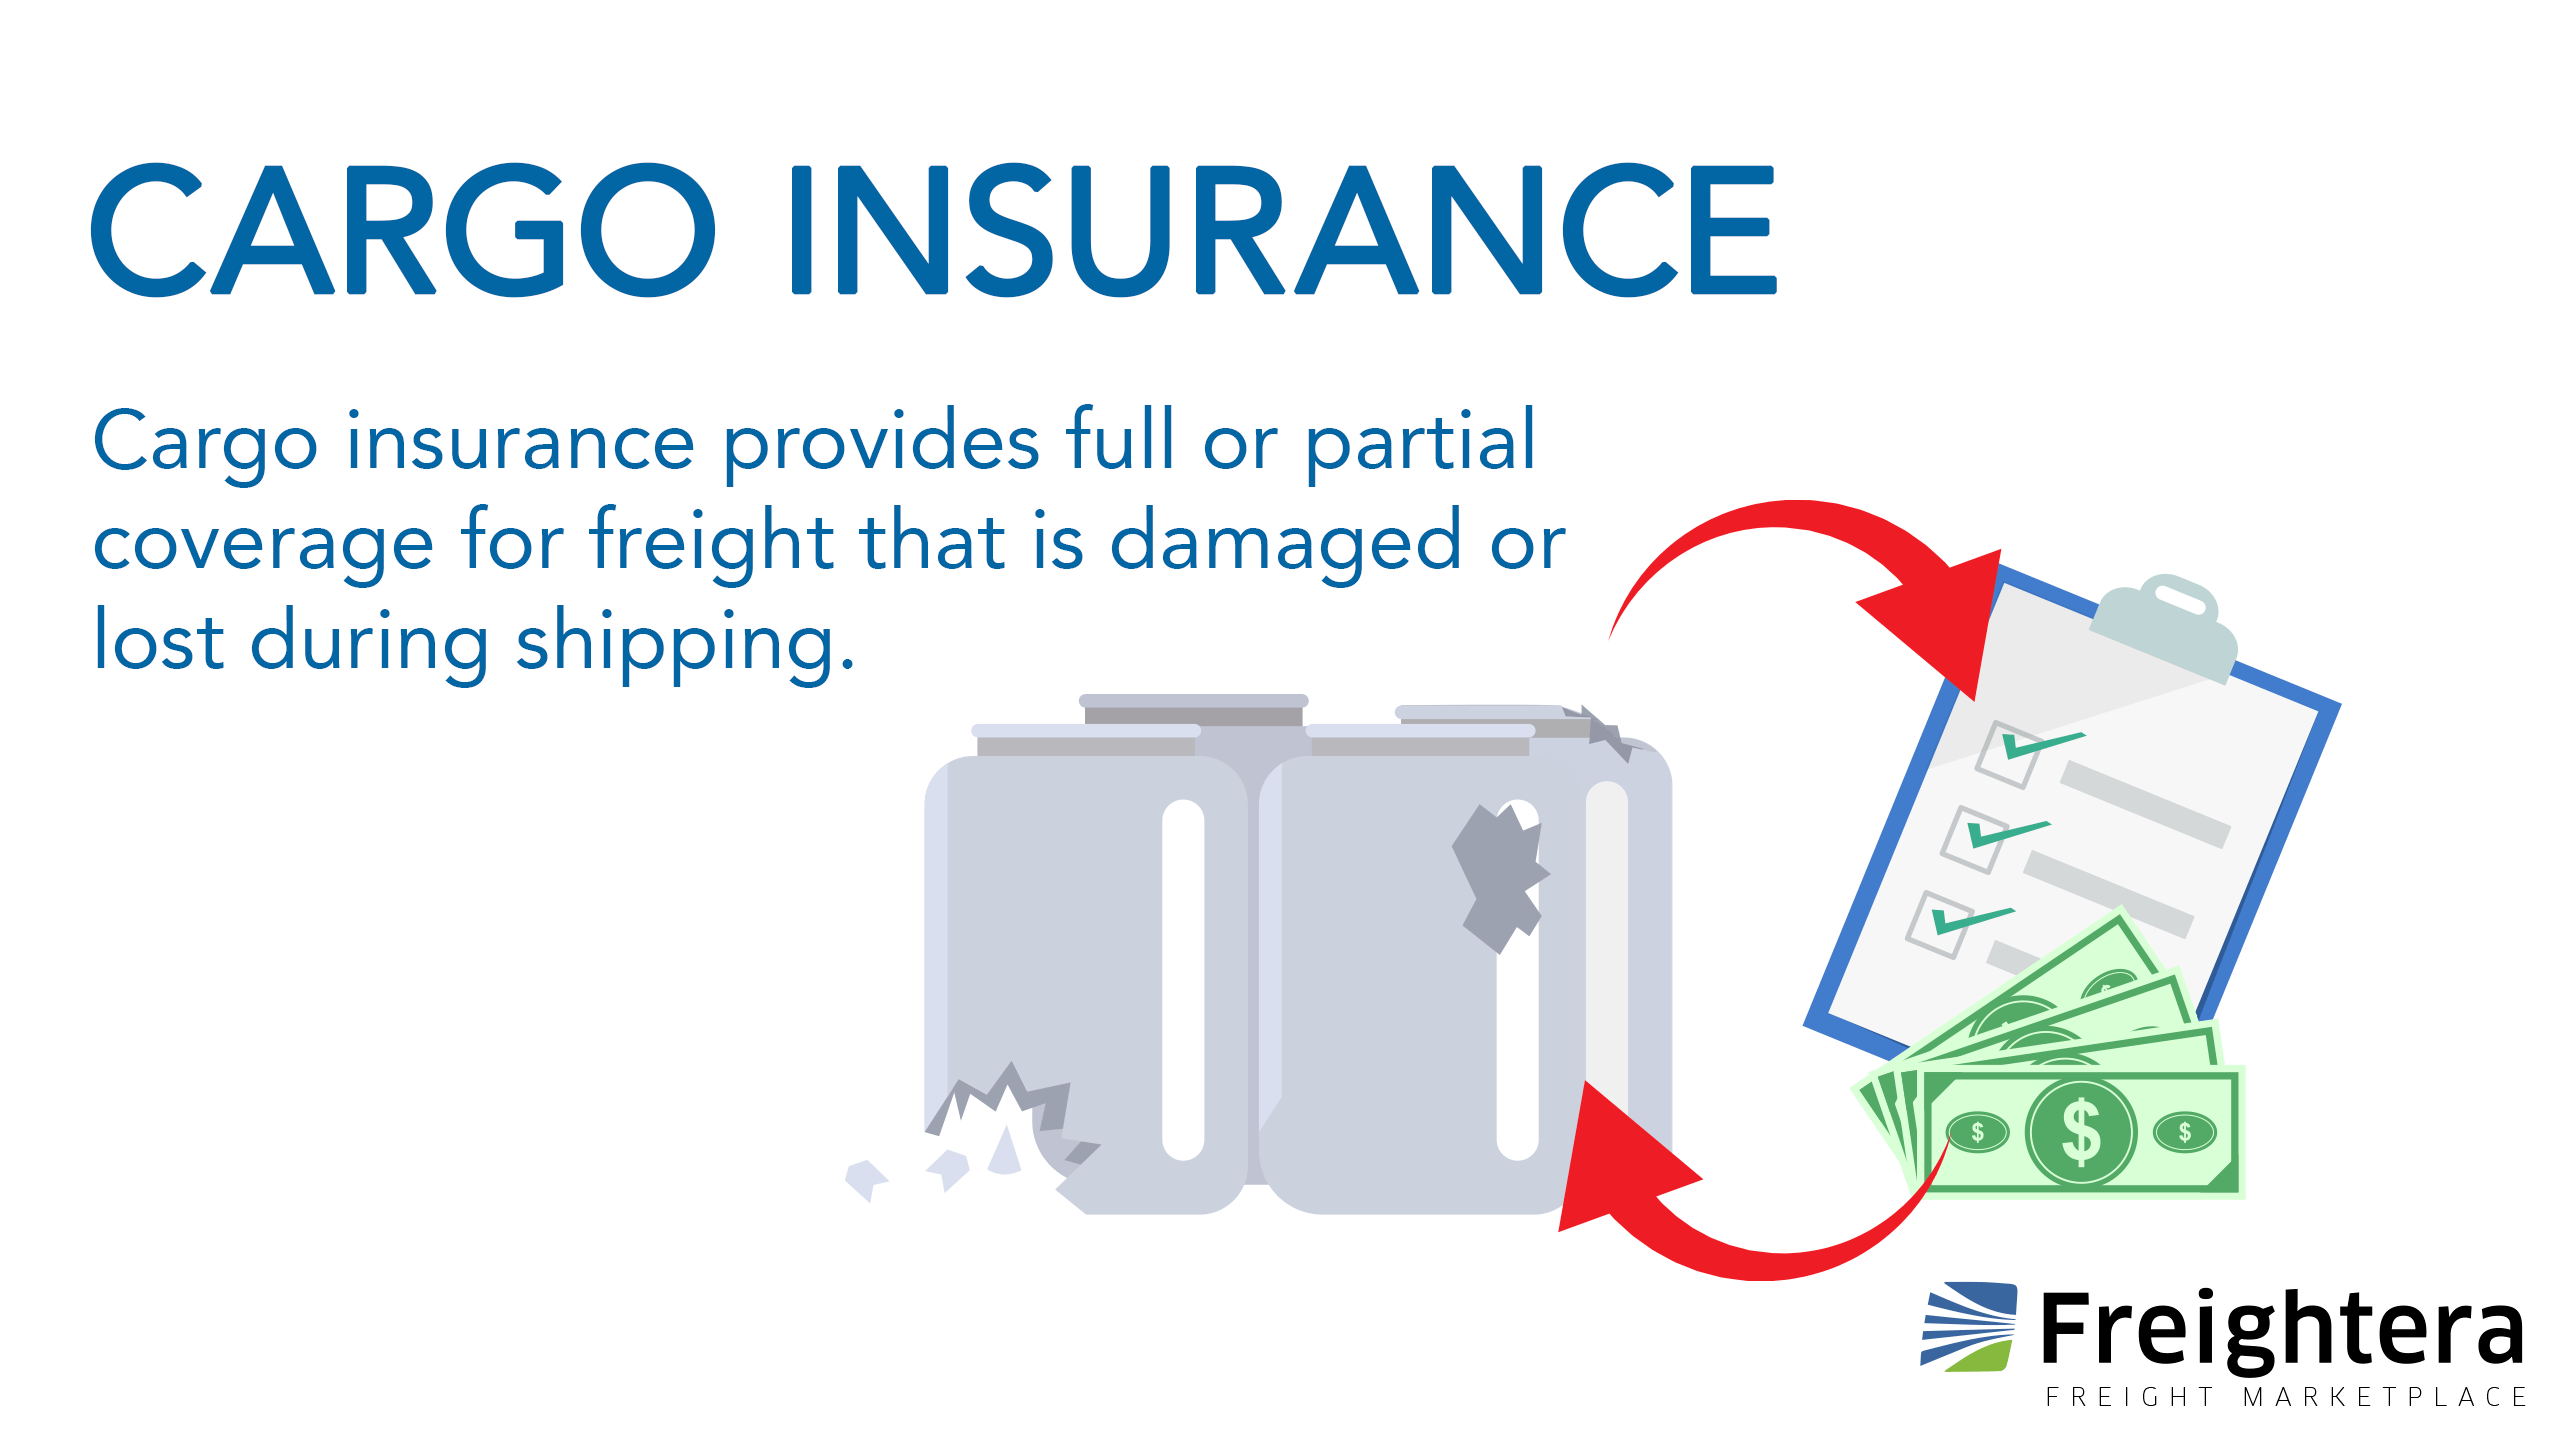 Freightera Cargo Insurance Glossary Definition